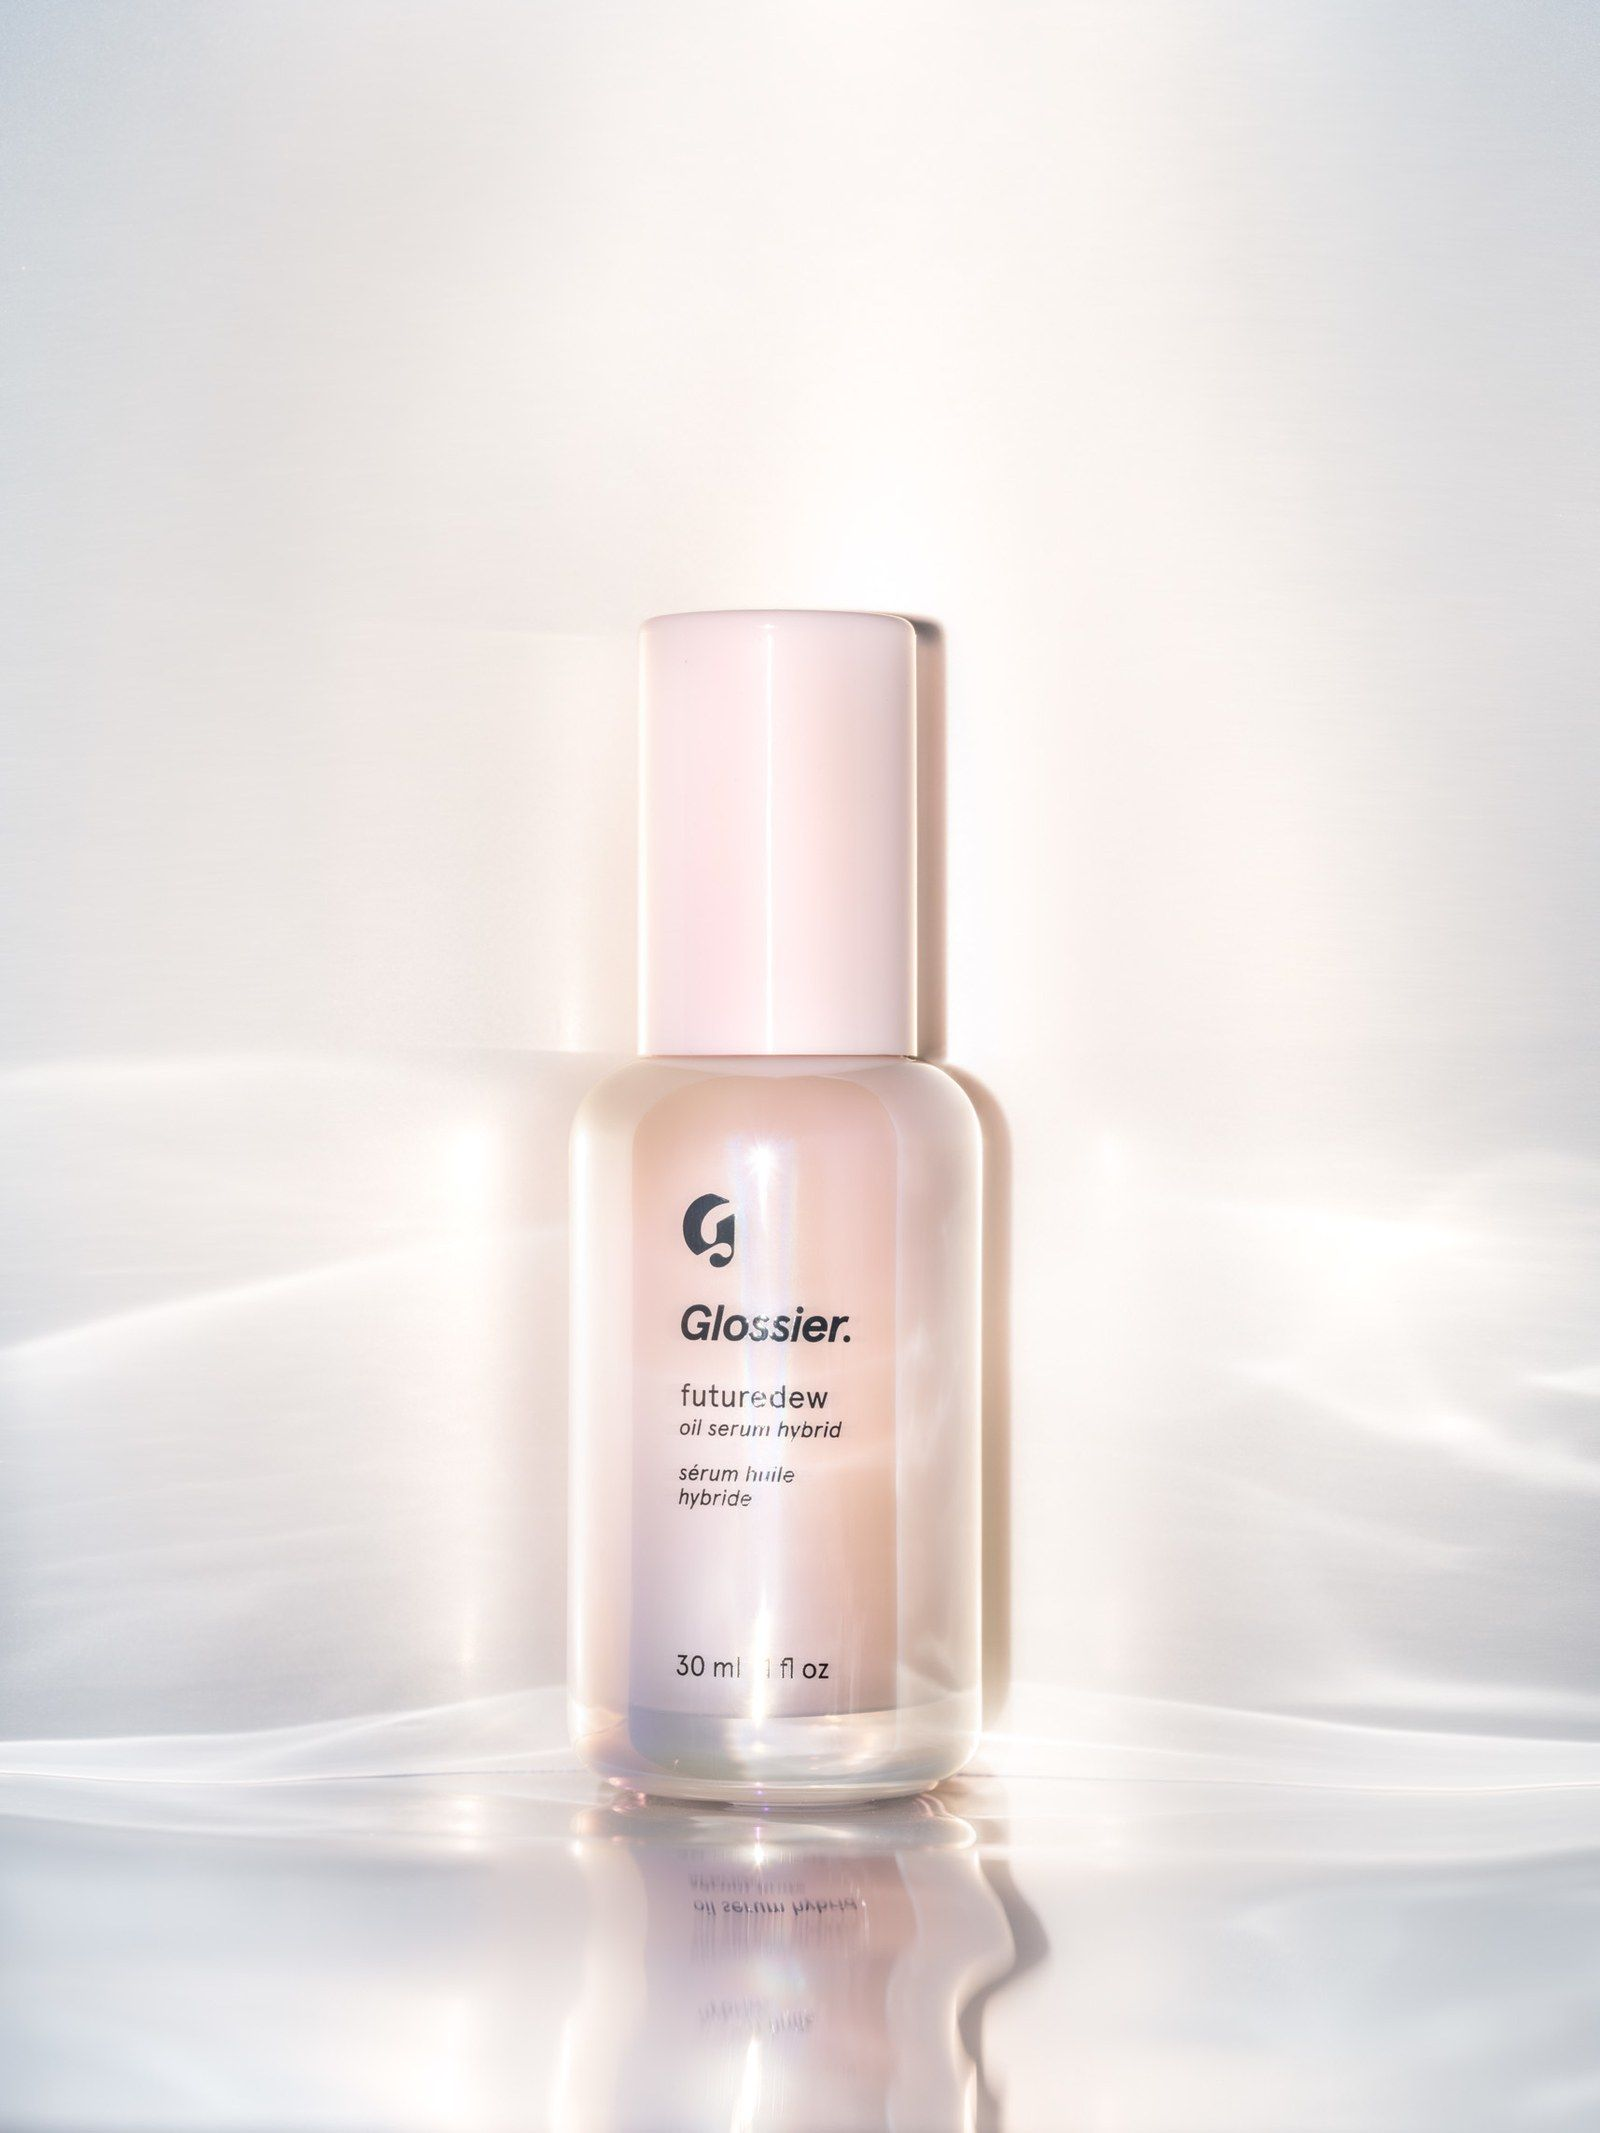 Glossier's New Product Is Literally Dewy Skin in a Bottle